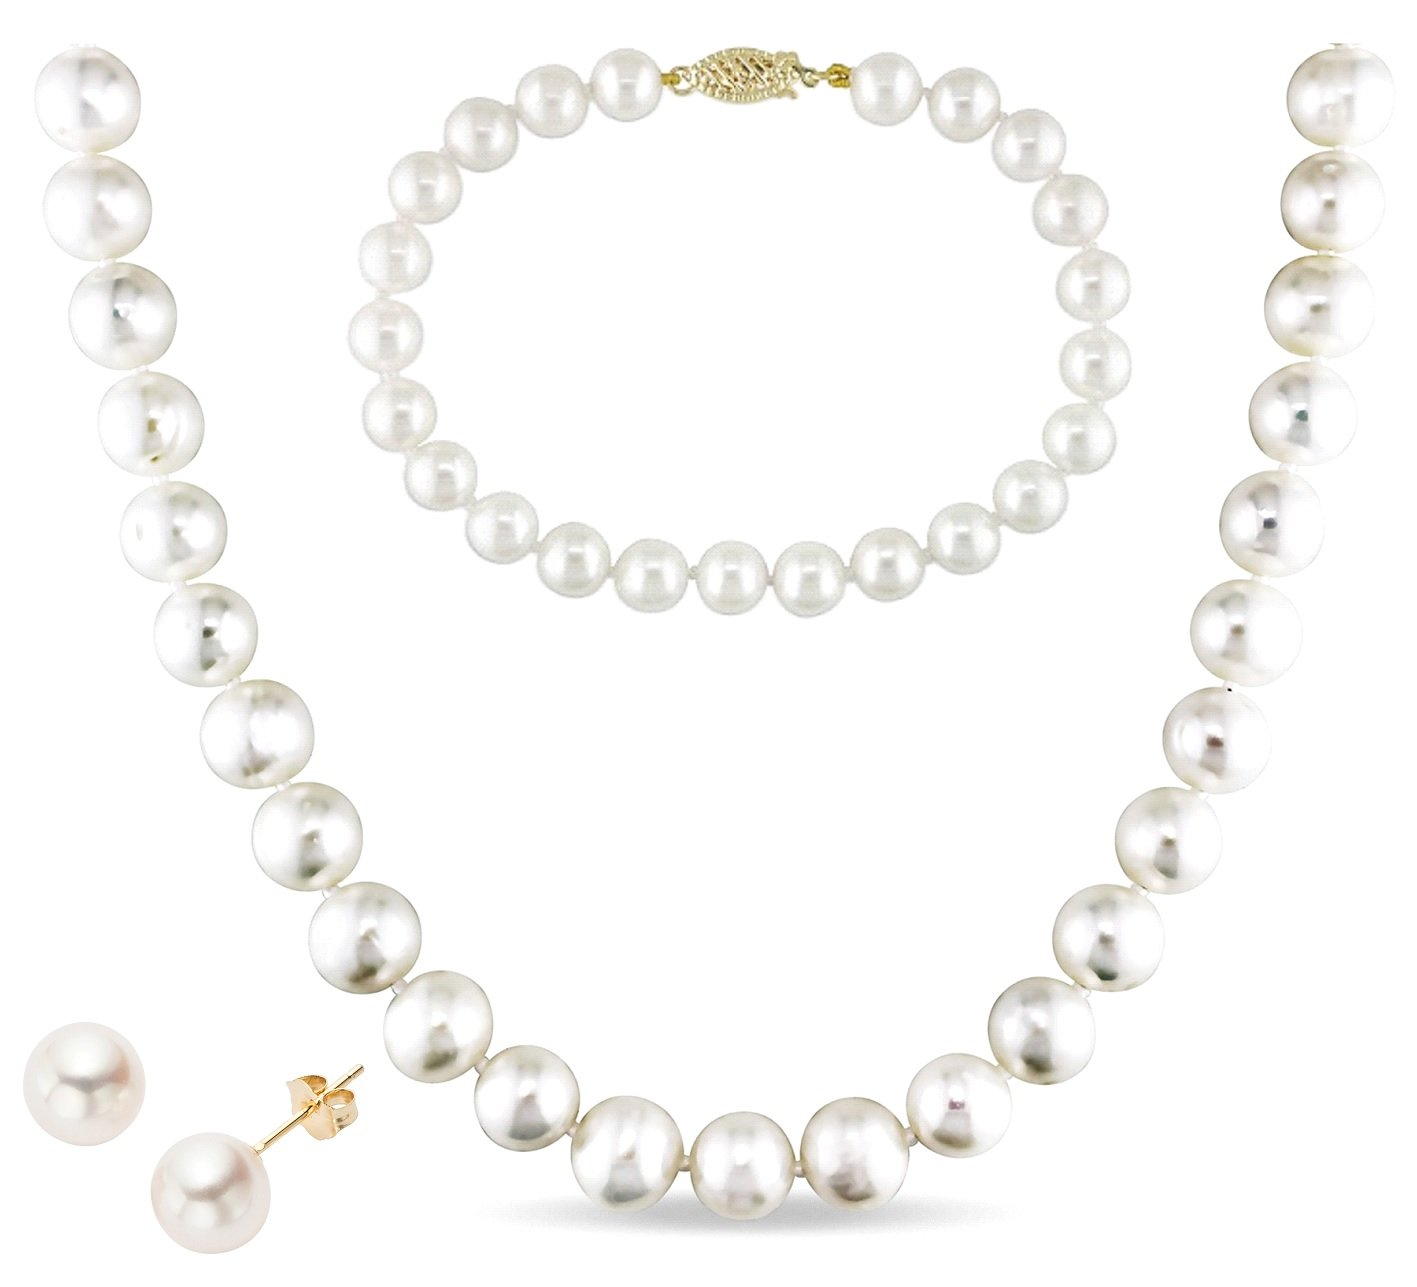 14k Gold 9-10mm White Freshwater Cultured AA-Quality Pearl Necklace, Bracelet and Earrings Set